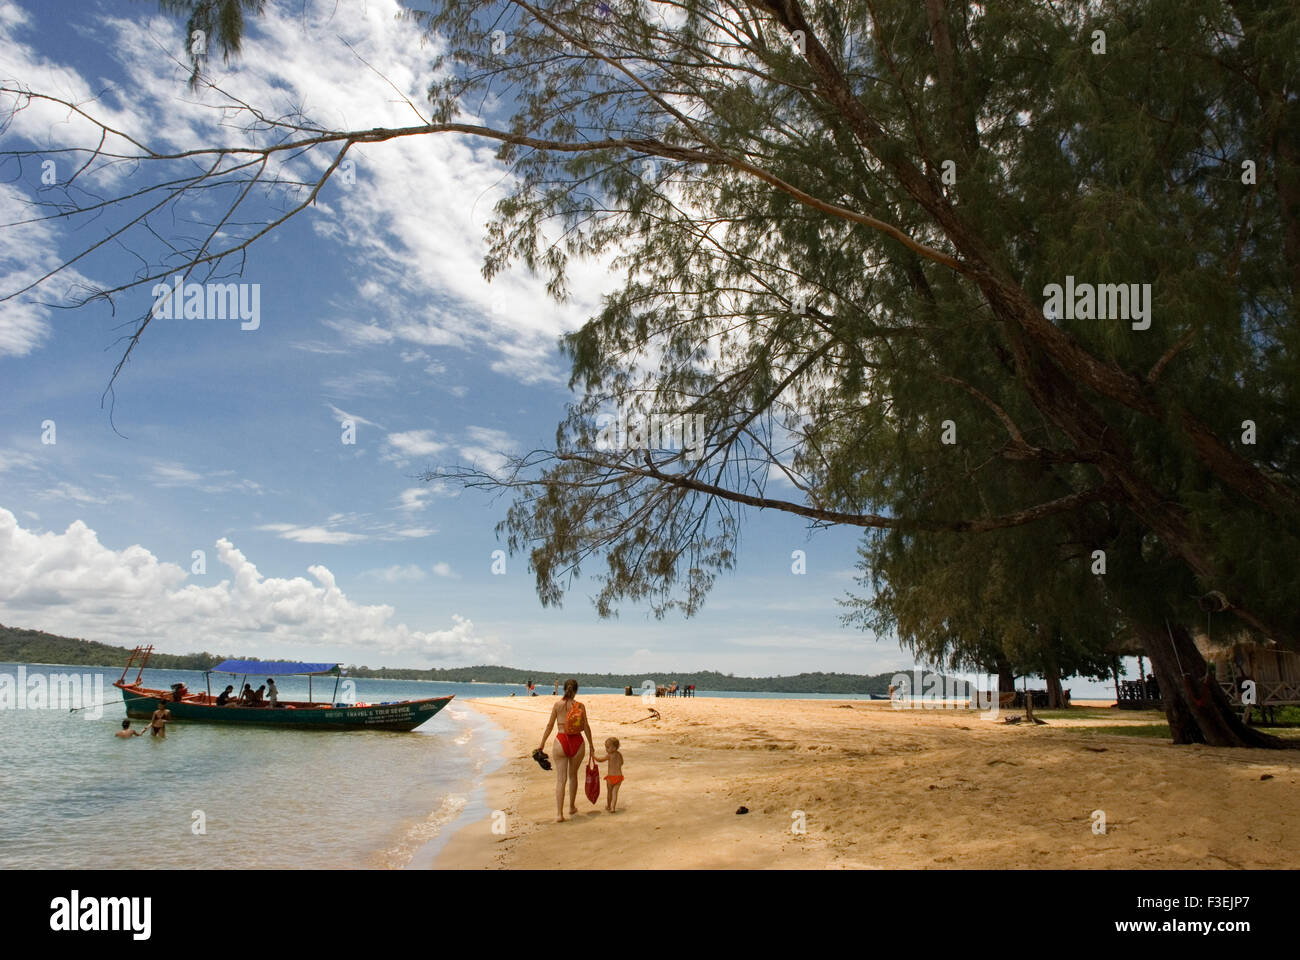 Beach on the island of Koh Russei. Koh Russei, also named Koh Russey or Bamboo Island is a green, gilt-edged crescent, - Stock Image